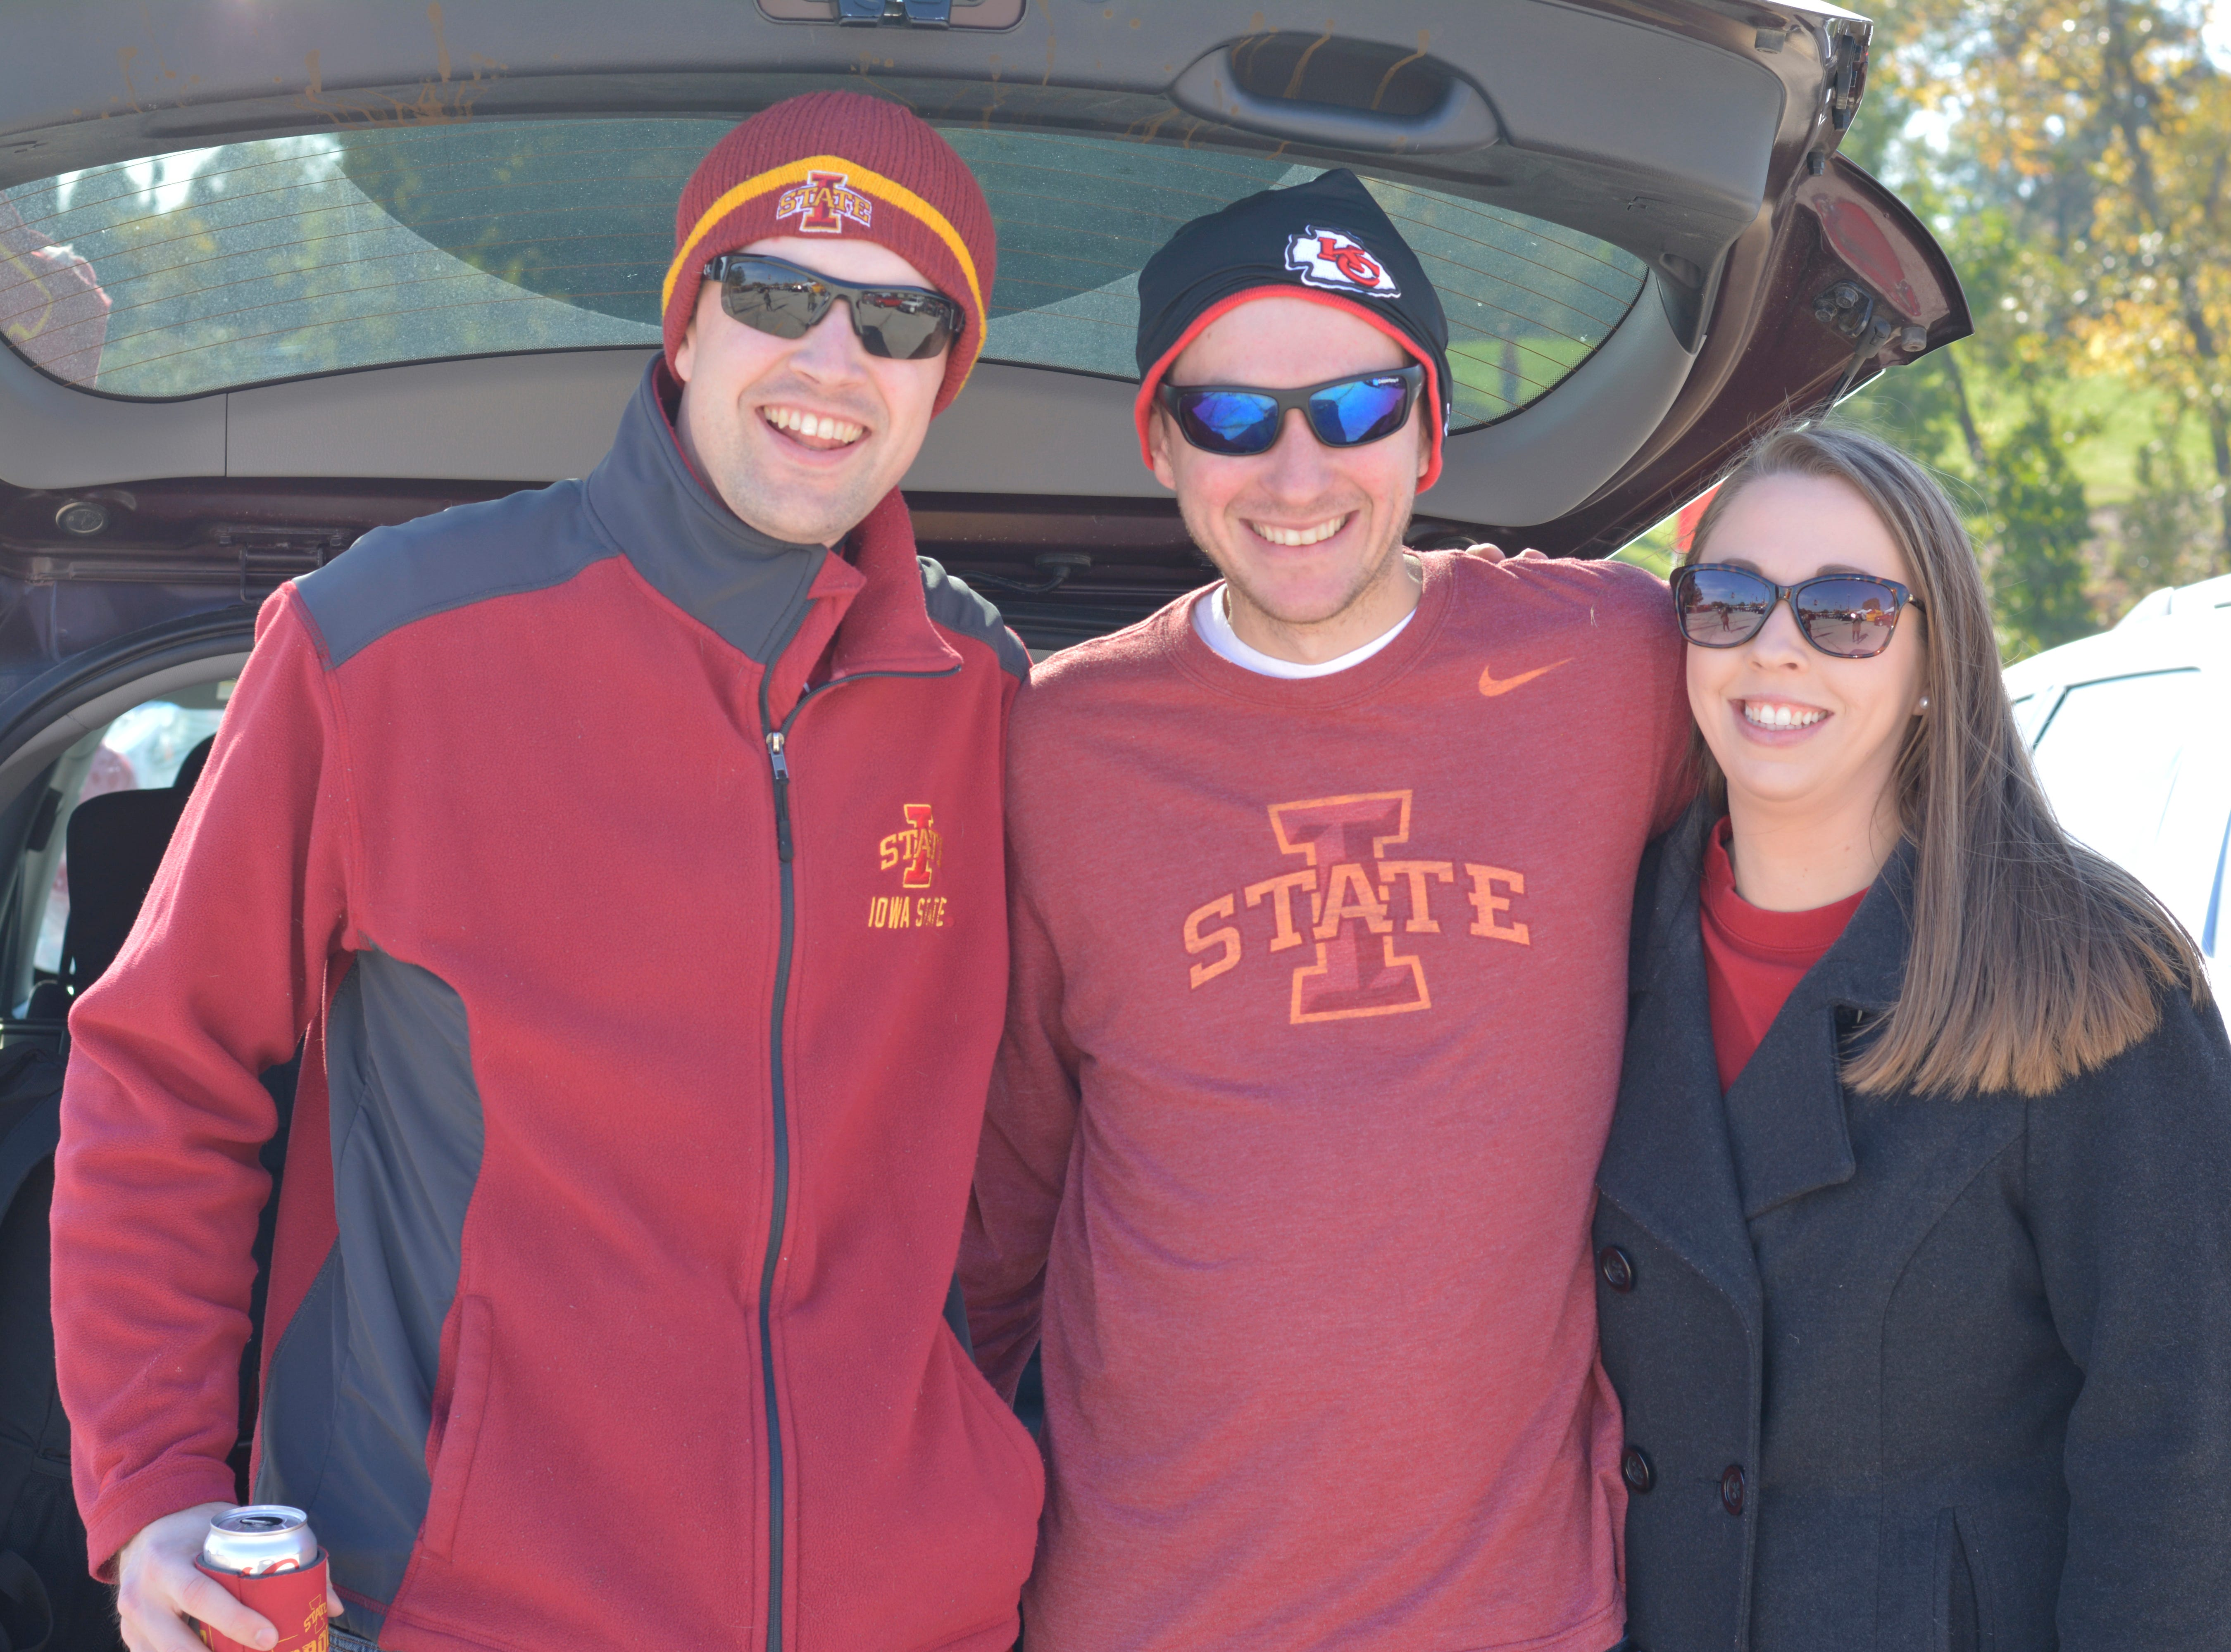 Andrew McDowell (left), Jared DeBoer (middle) and Melissa DeBoer (right) before the Iowa State University football game against West Virginia in Ames on Oct. 13.